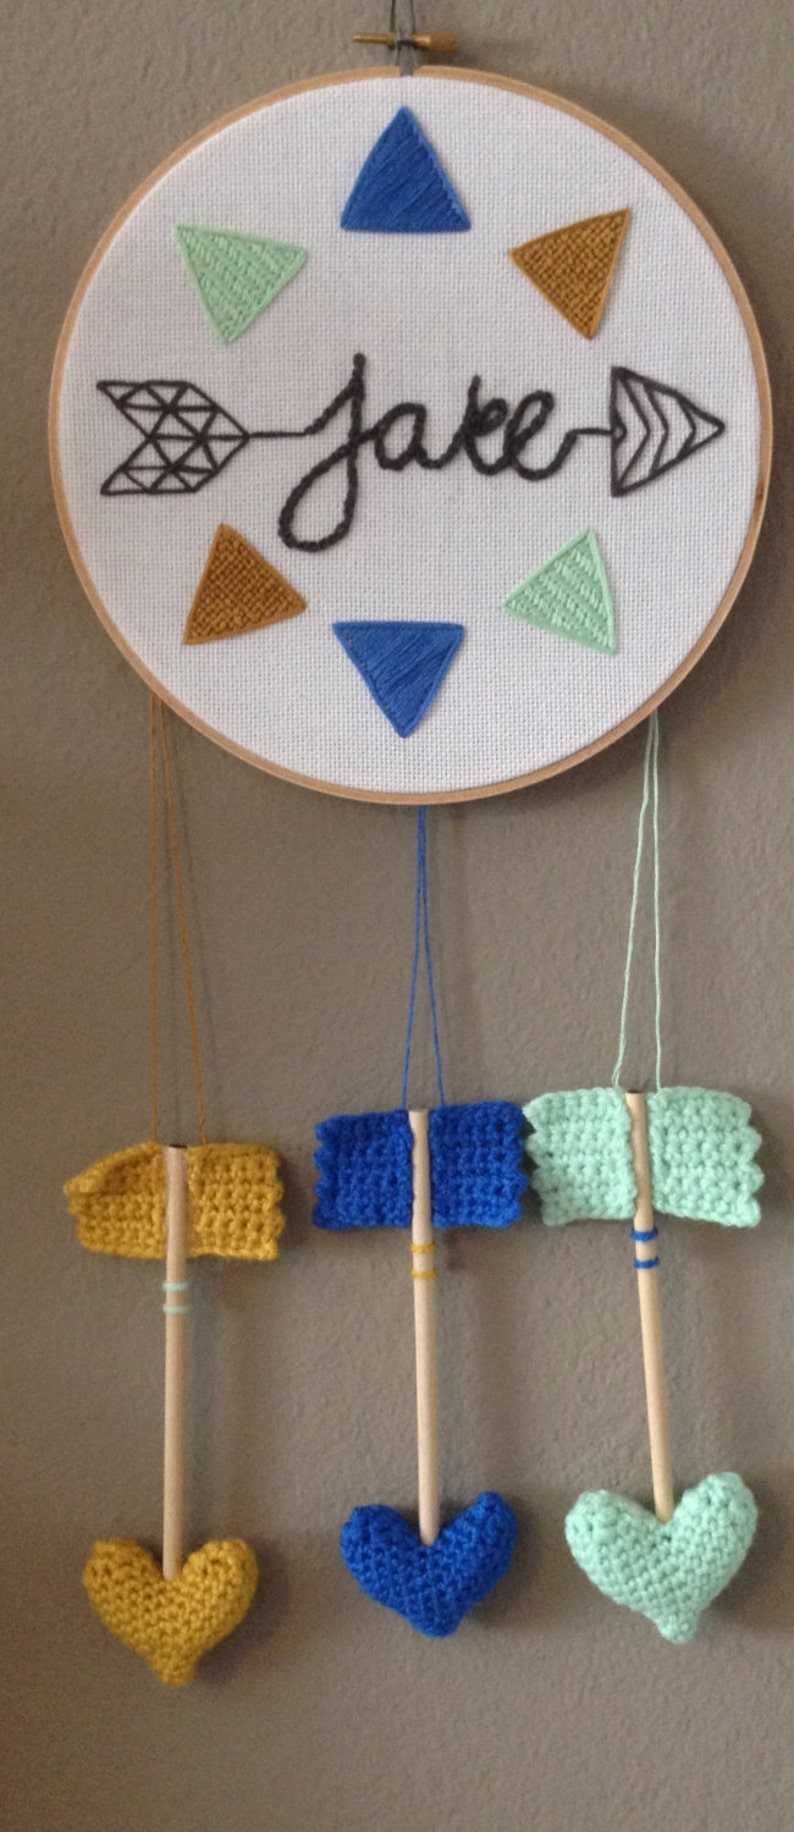 Hand Stitched 8 Hoop w/ Hanging Heart Arrows  Any Color image 0